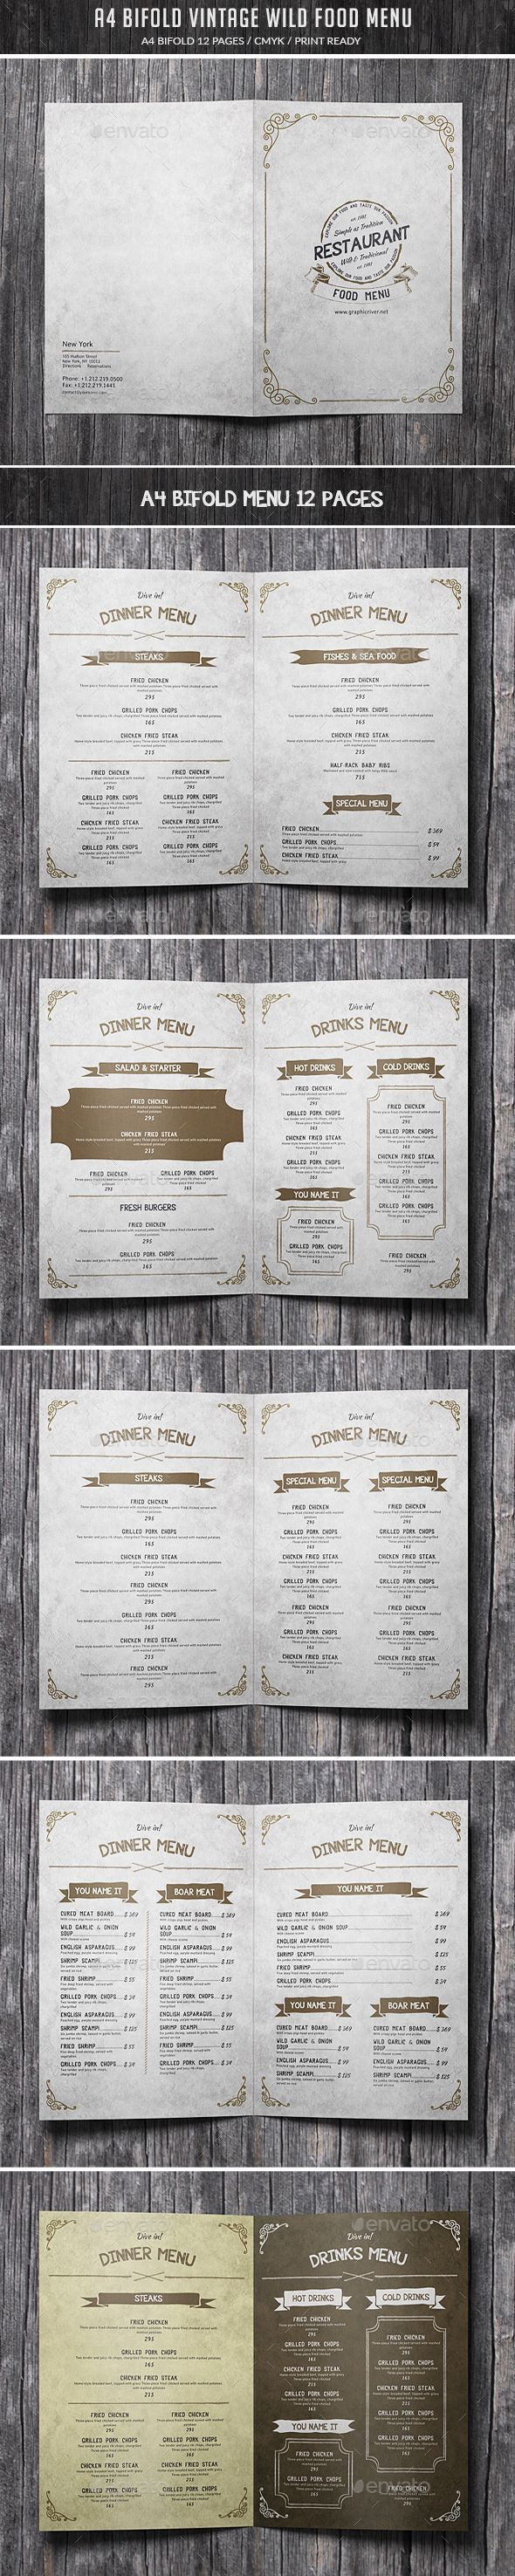 A4 Bifold Vintage Wild Food Menu — Photoshop PSD #restaurant menu #old • Available here → https://graphicriver.net/item/a4-bifold-vintage-wild-food-menu/15720896?ref=pxcr